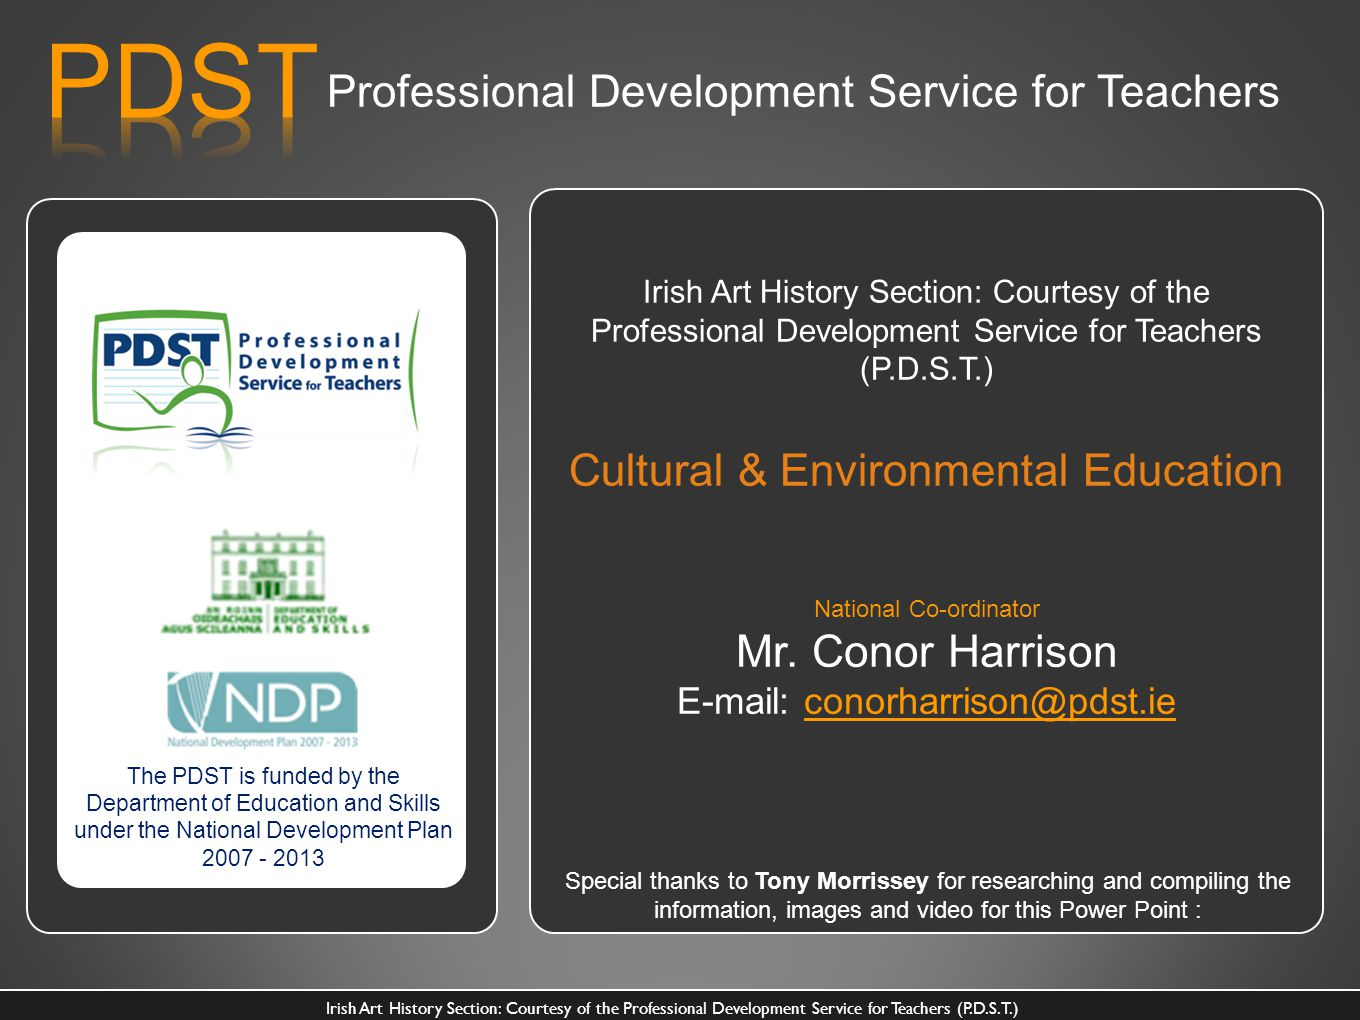 PDST Professional Development Service for Teachers